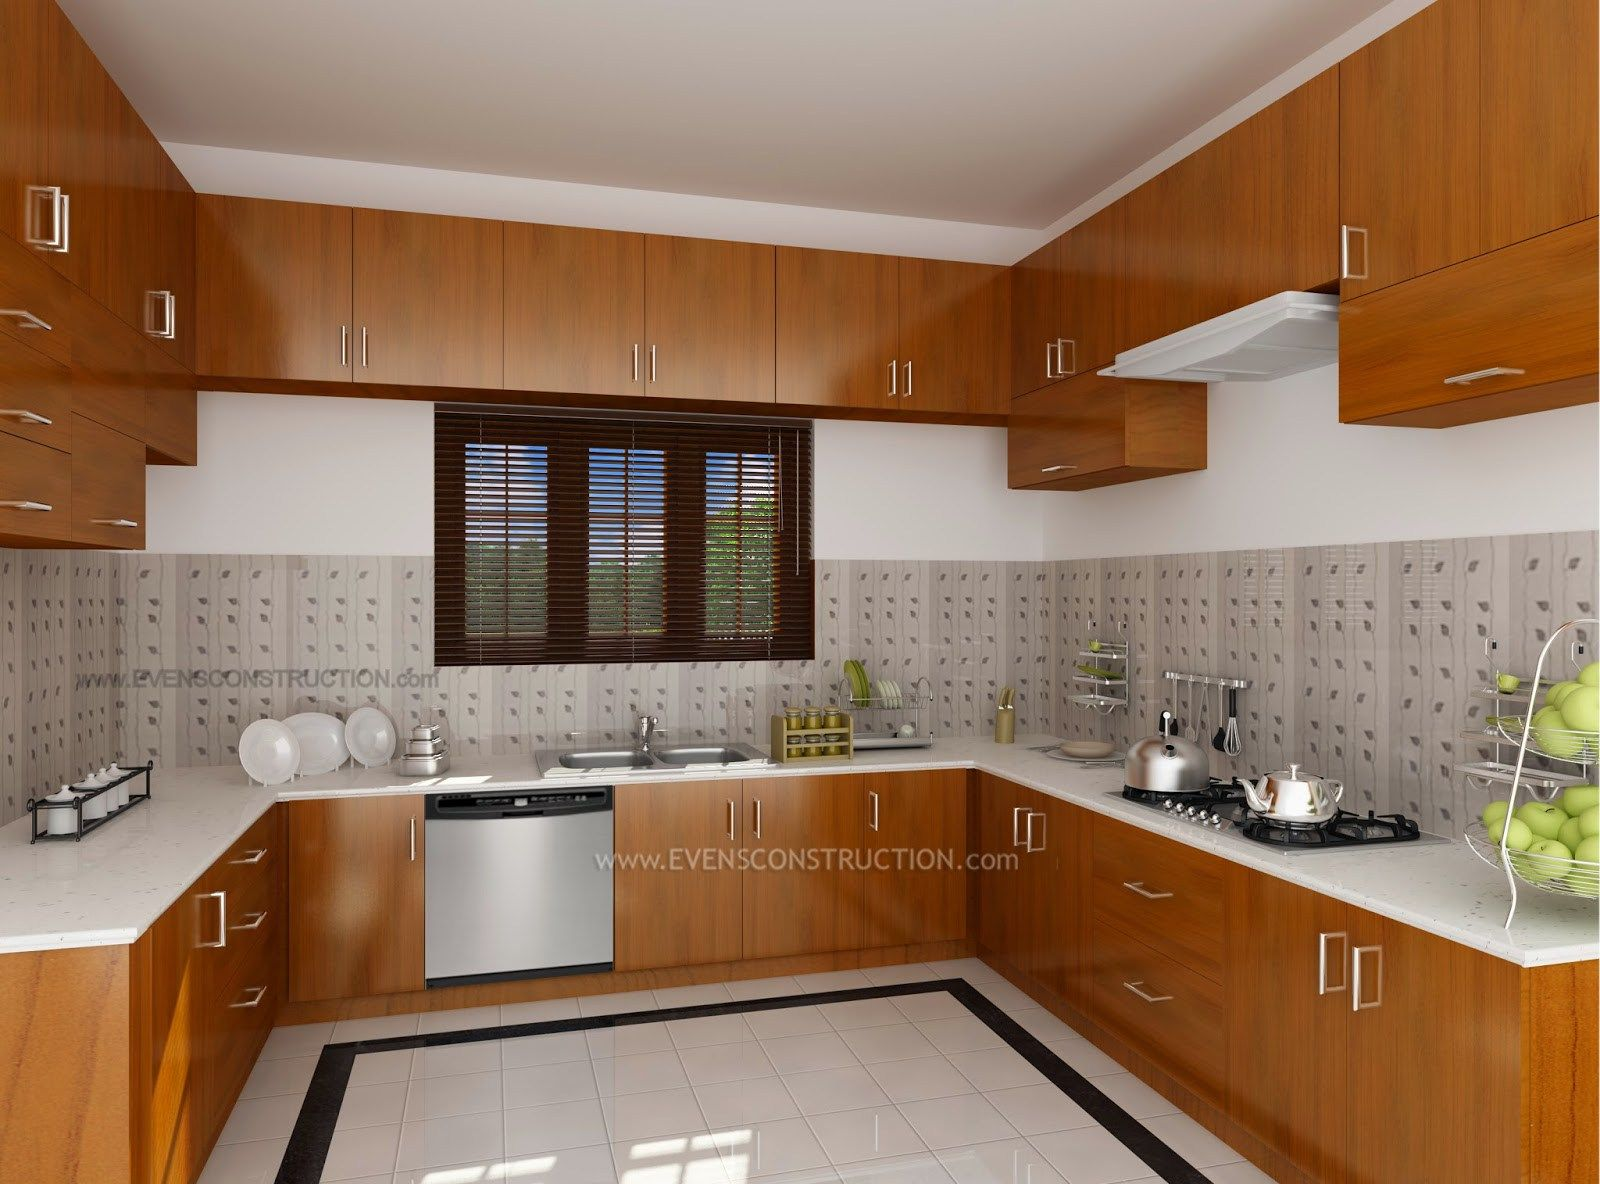 Design interior kitchen home kerala modern house kitchen for Kitchen interior design india